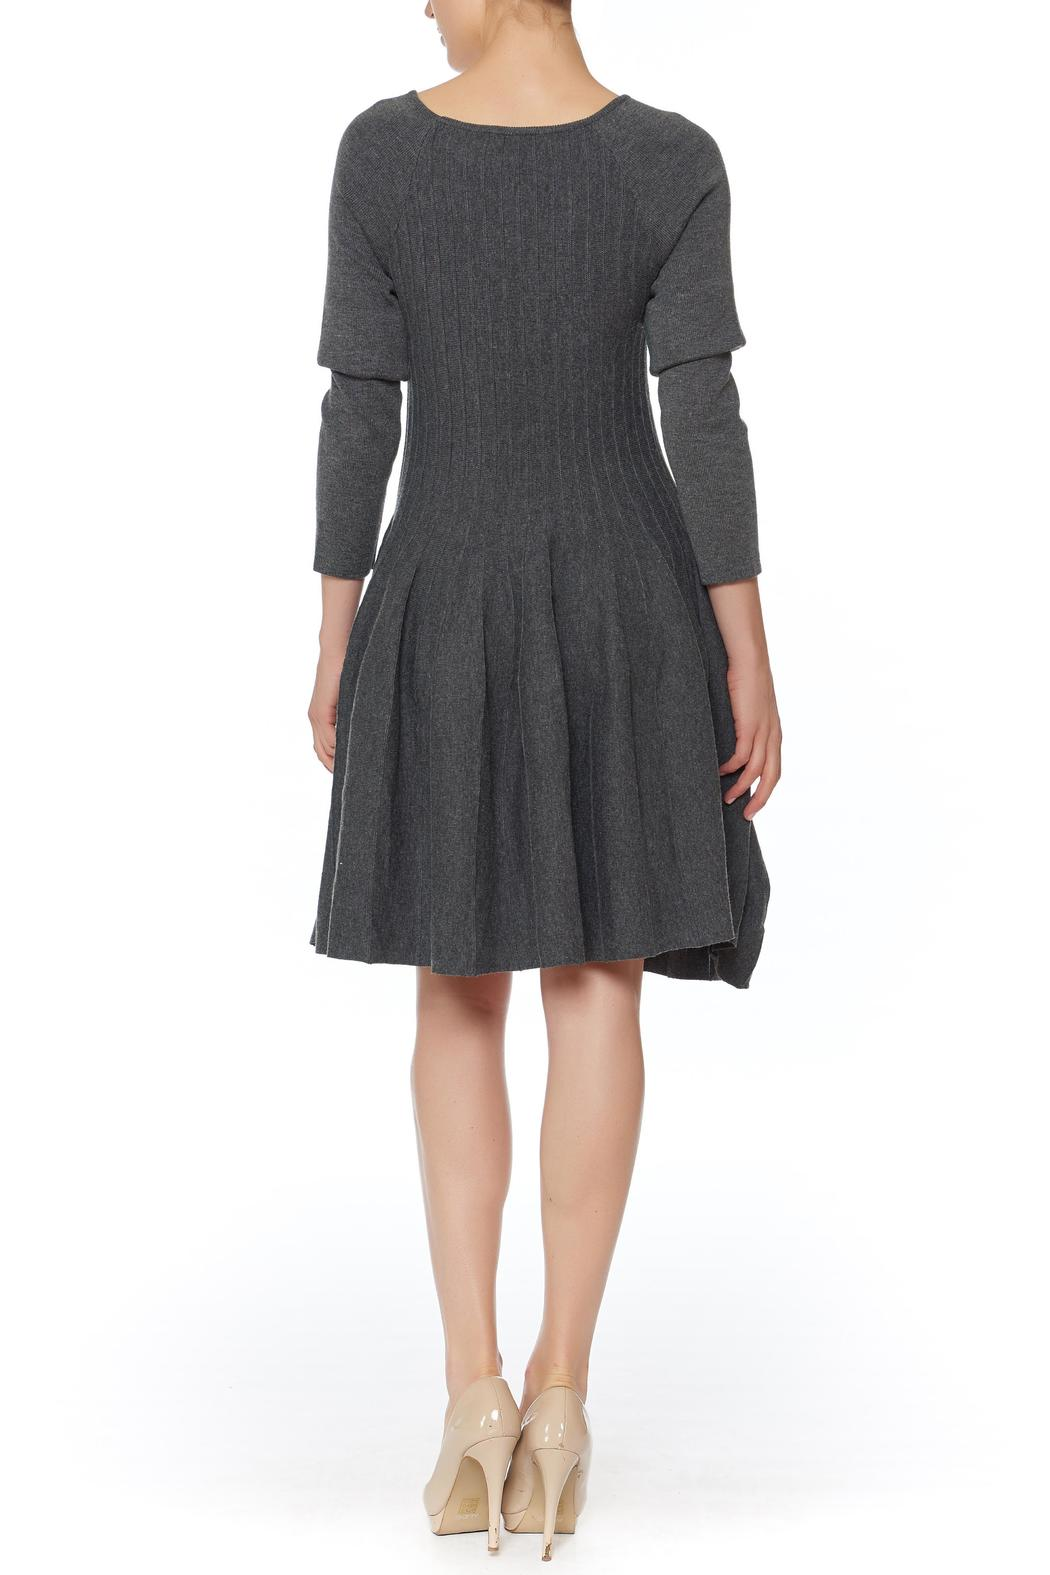 She + Sky Fit And Flare Dress - Front Full Image